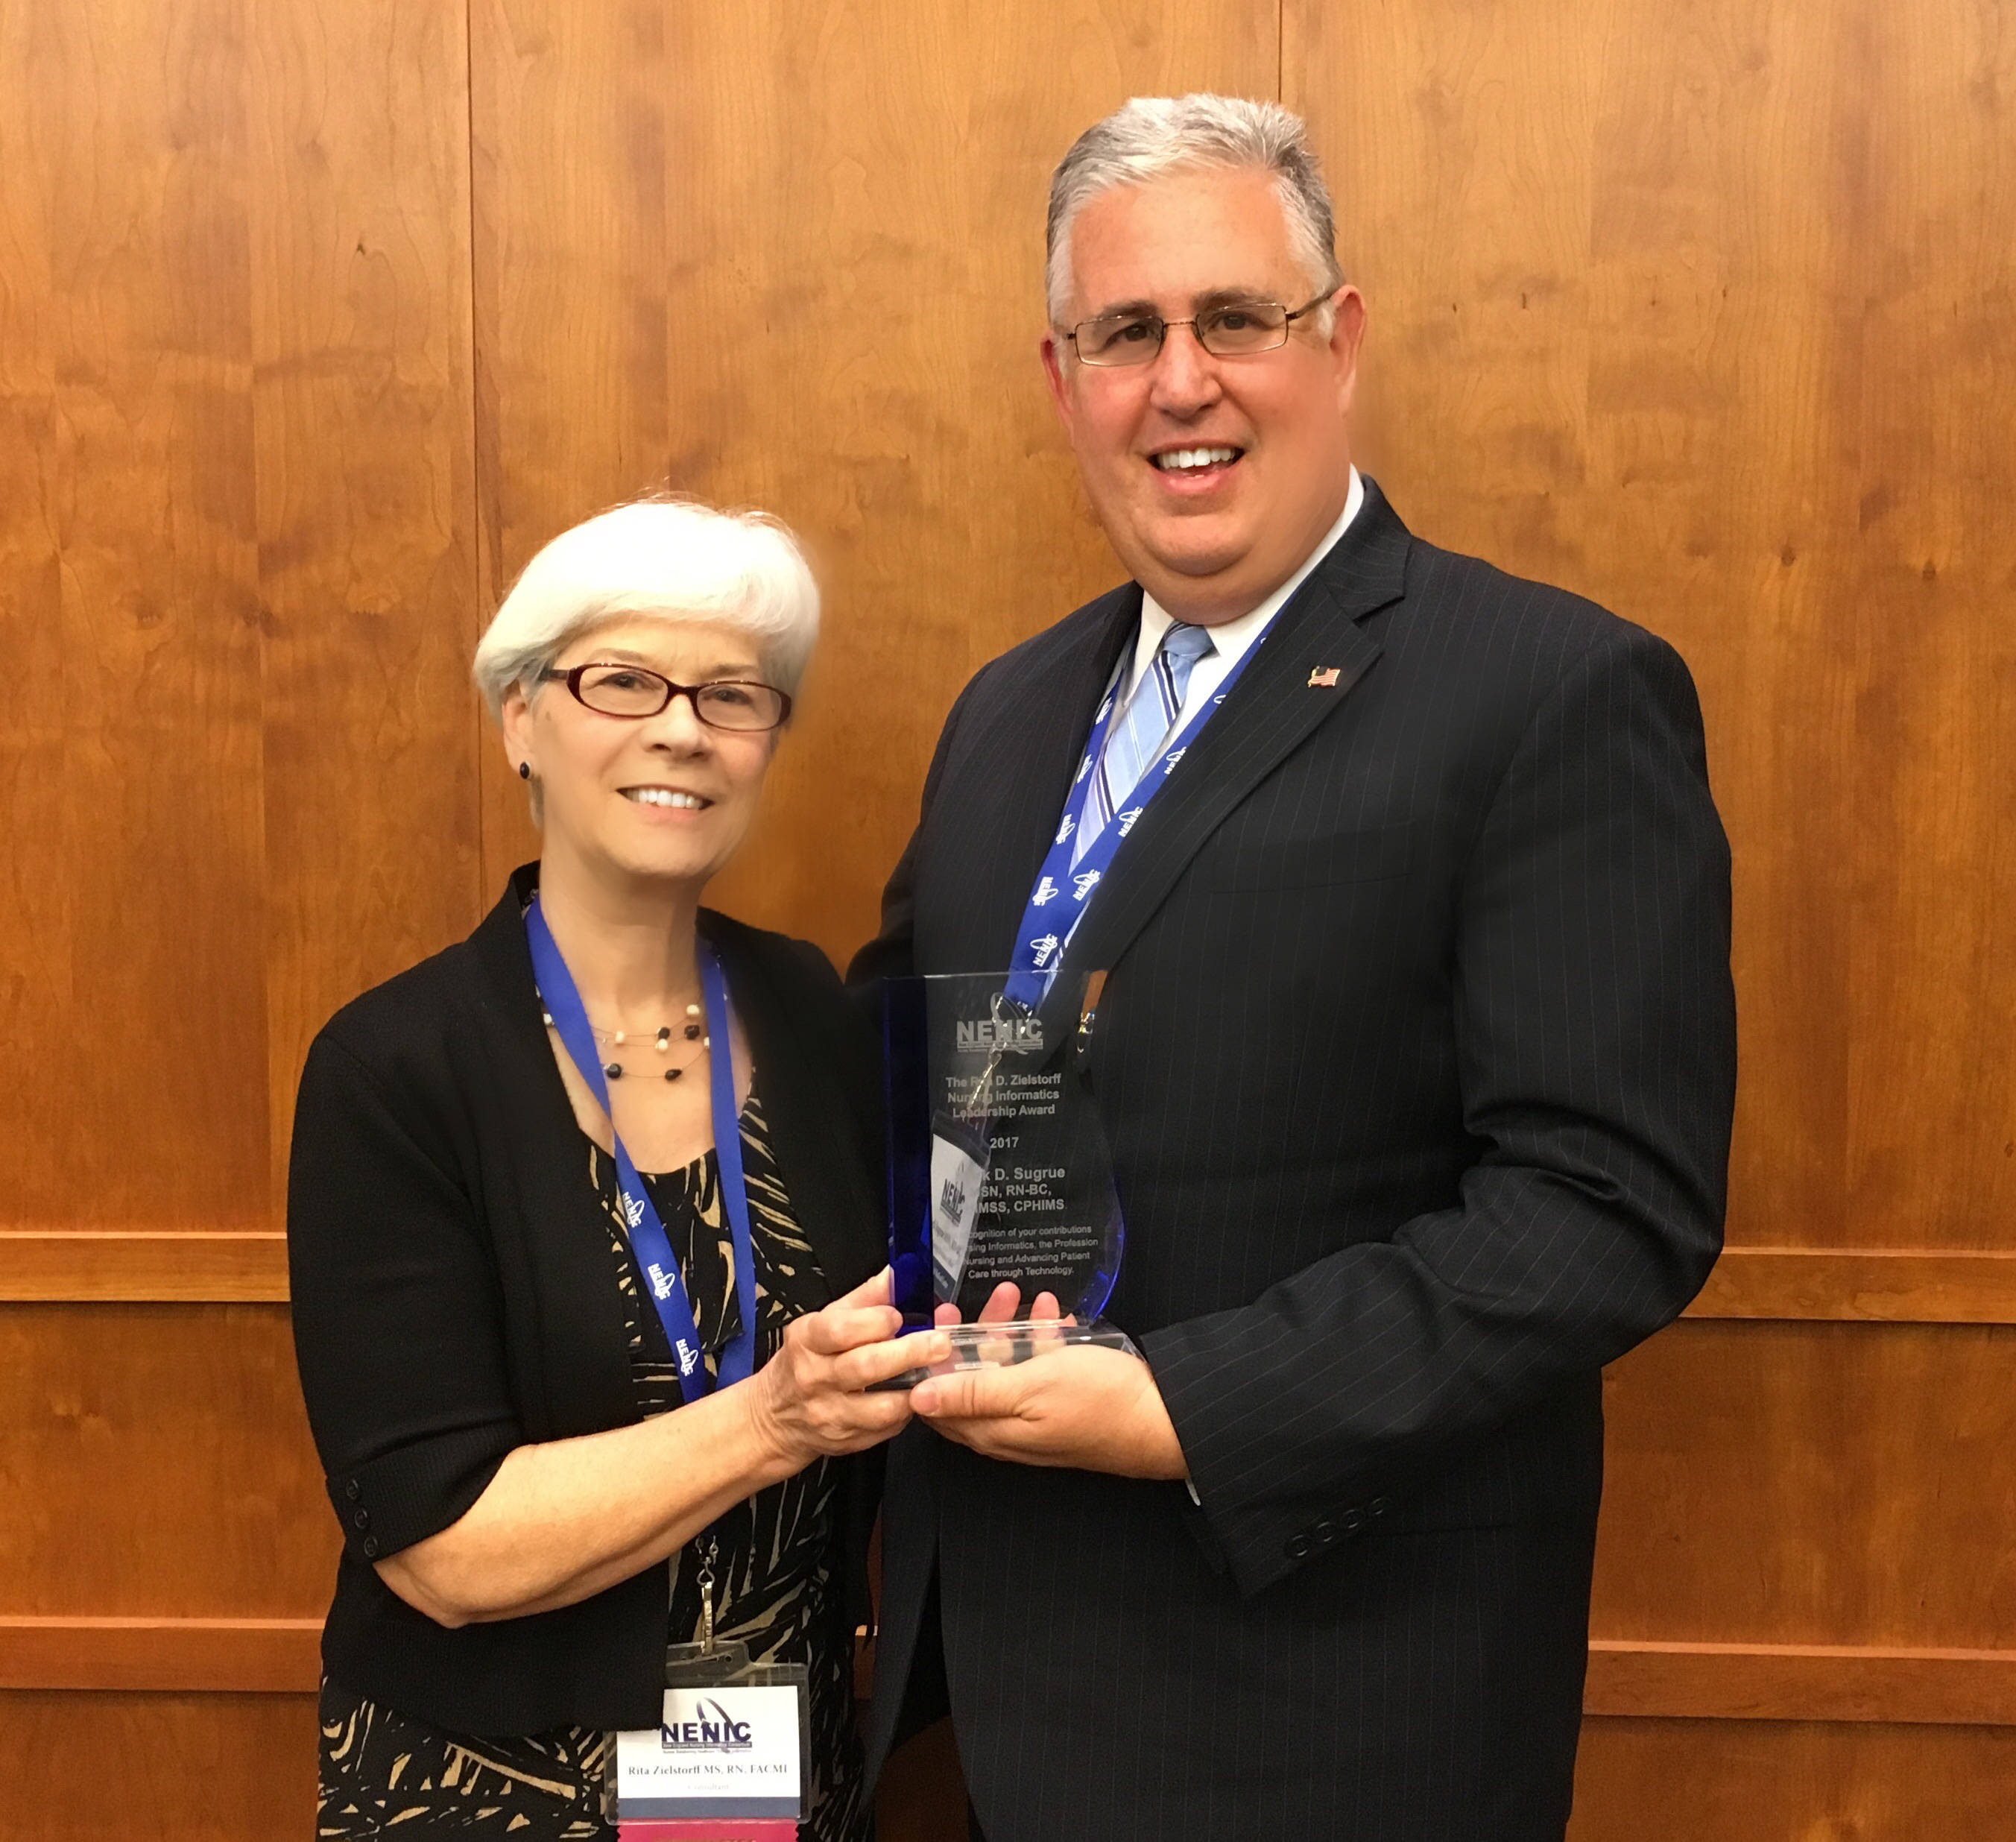 2017 Rita D Zielstorff Nursing Informatics Leadership Award